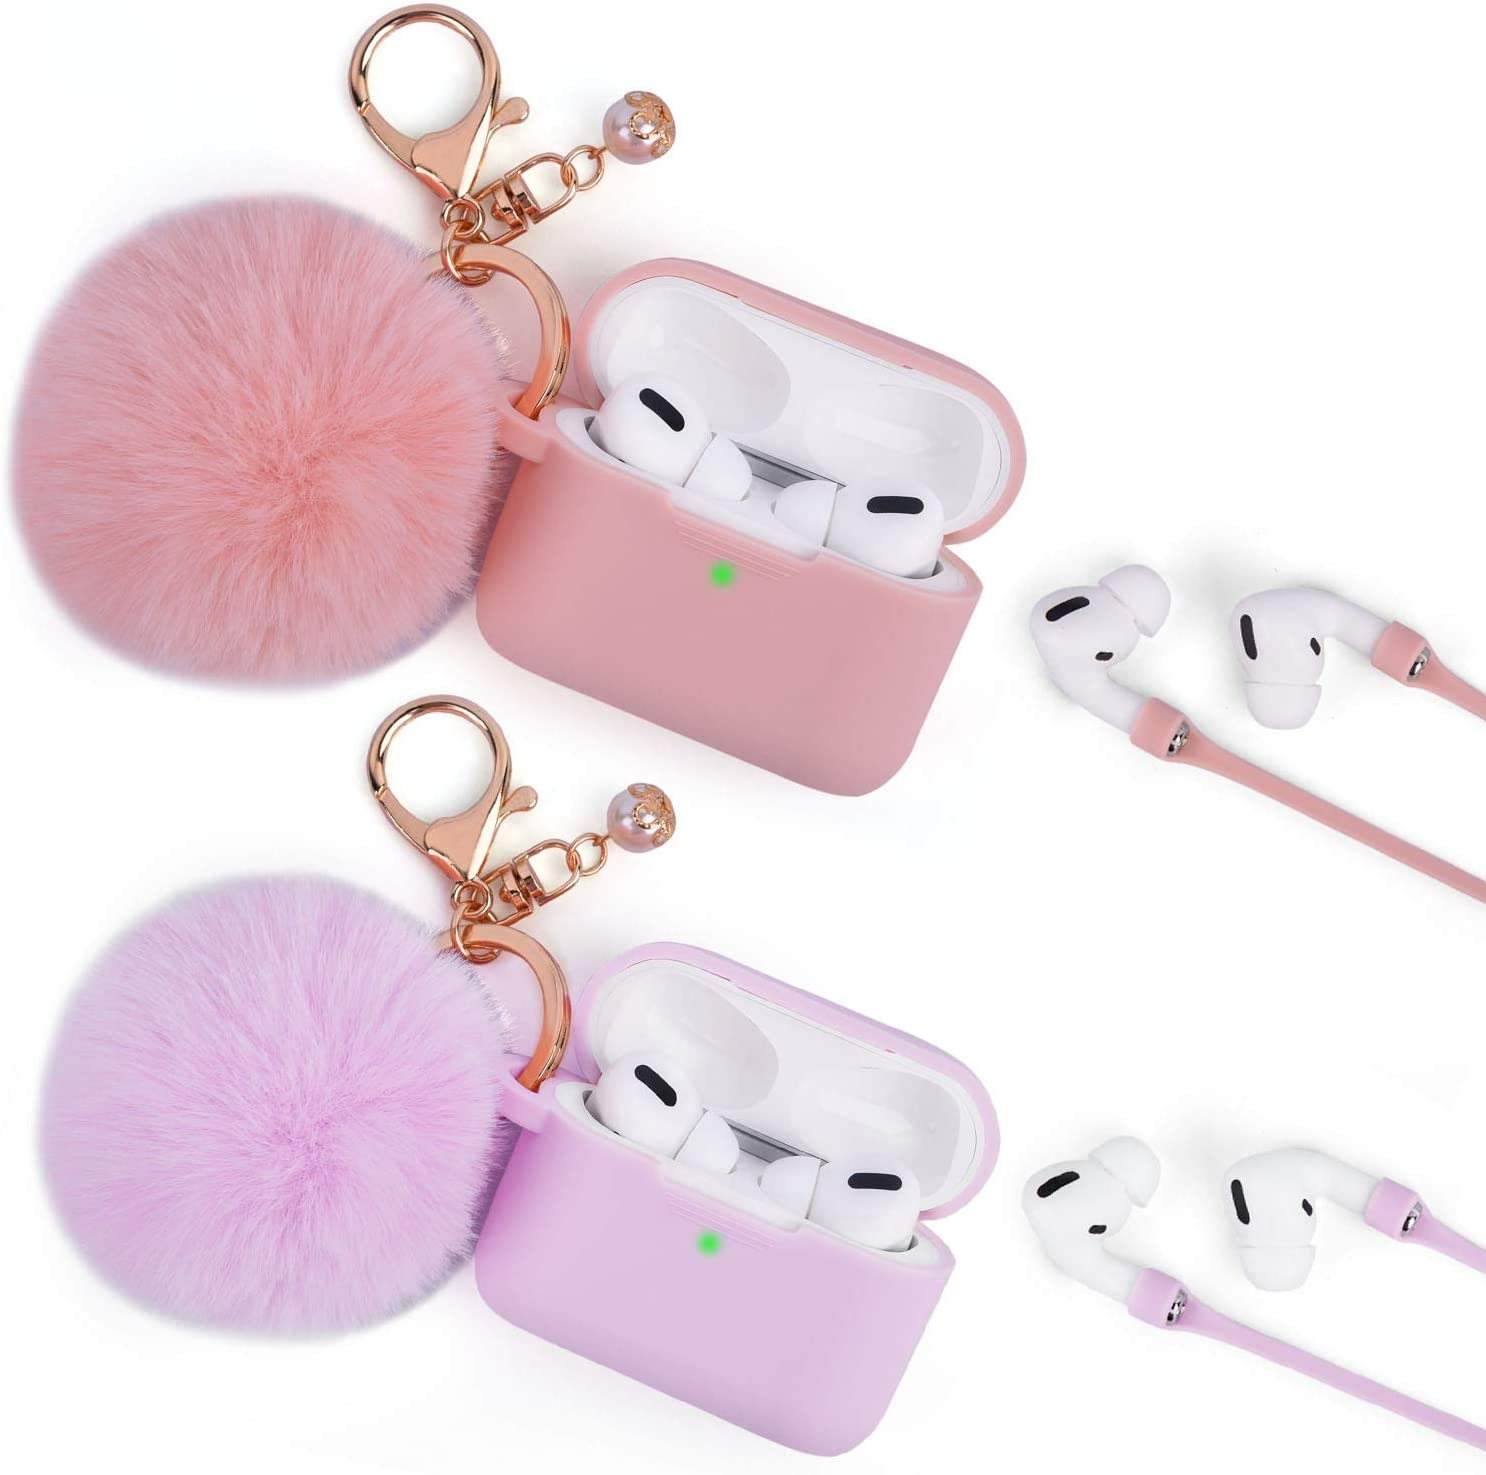 Case for Airpods Pro, Filoto Airpod Pro Cases Cover for Apple AirPods Pro Wireless Charging Case, Cute Air Pods 3 Case Silicone Protective Accessories Keychain/Pompom/Strap 2019 (Pink+Light Purple)